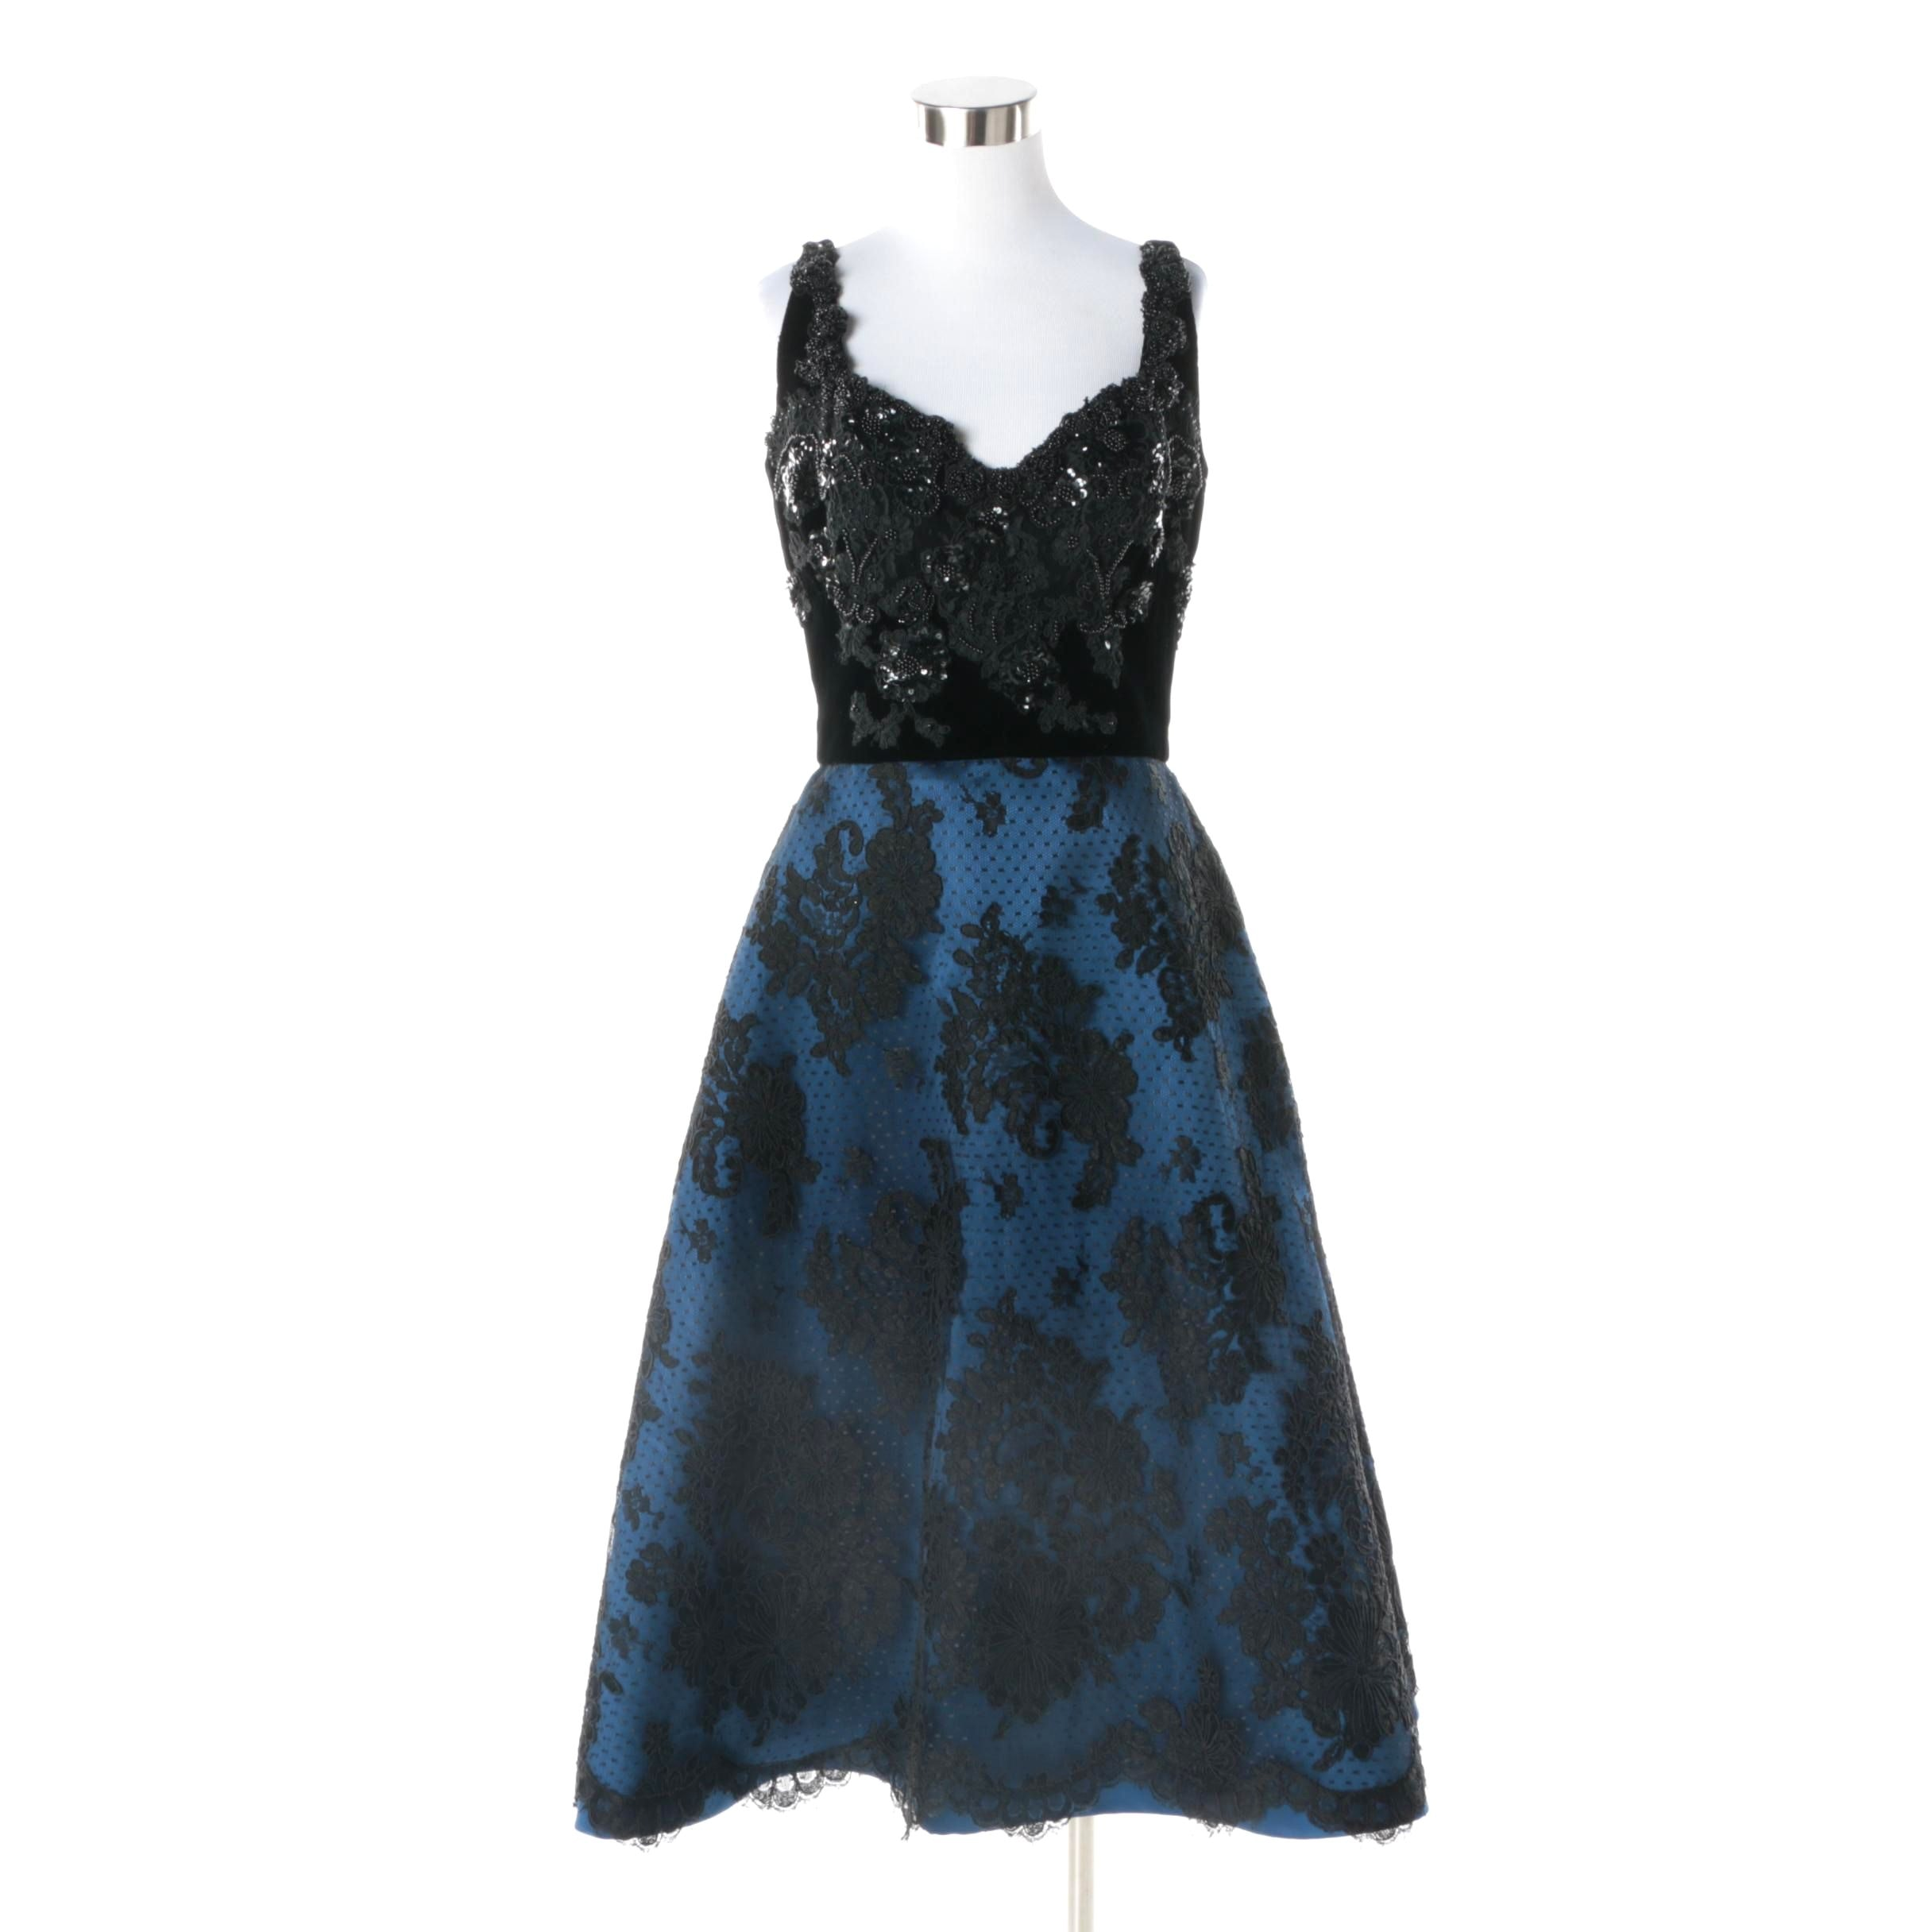 Vintage Custom Blue Satin and Black Floral Lace Beaded Sleeveless Evening Dress